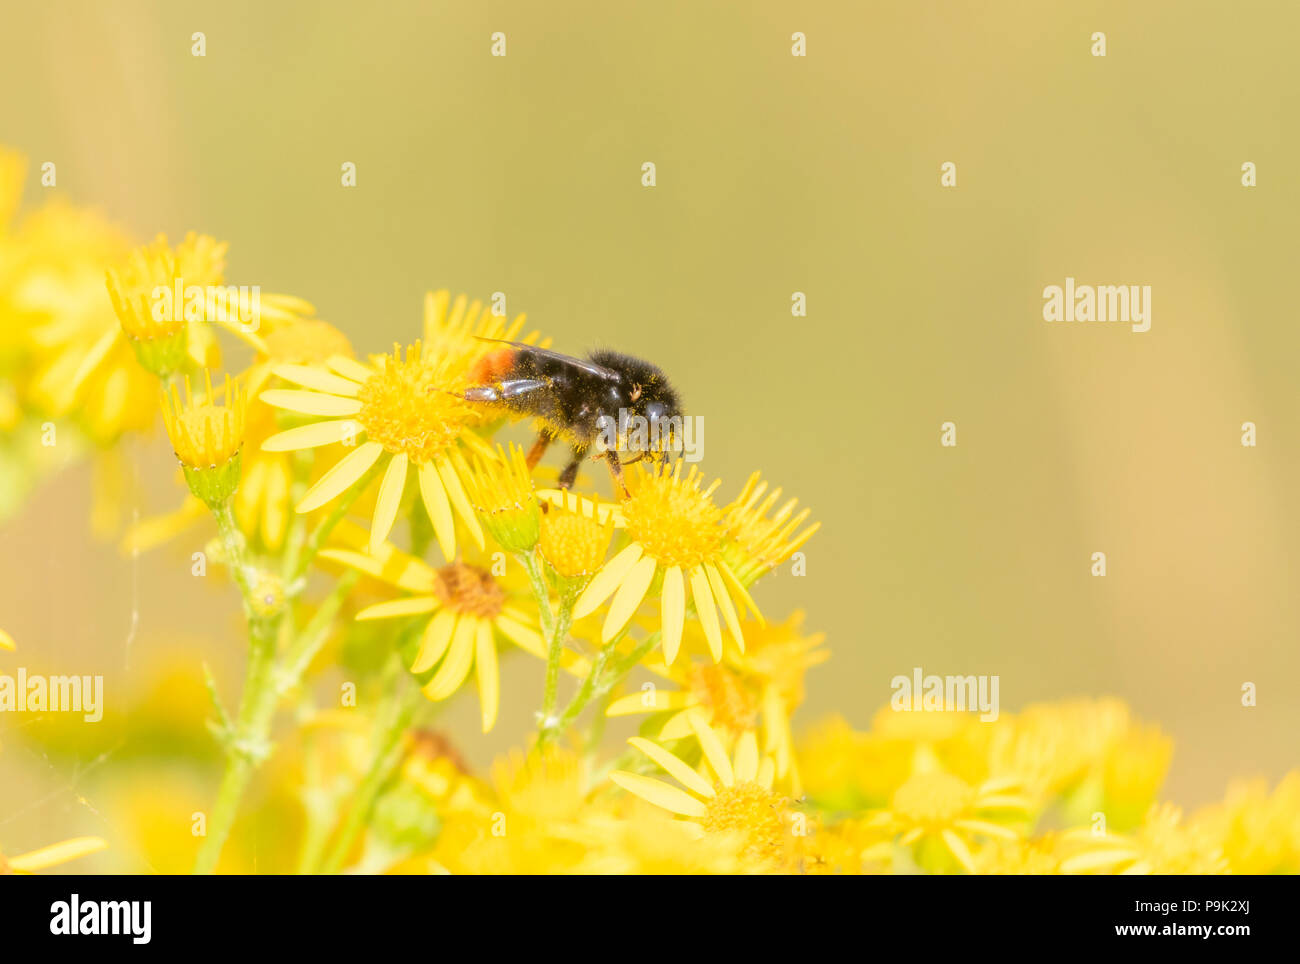 Red tailed bumblebee (UK) on ragwort flowers. The bee is covered in ;pollen dust. - Stock Image